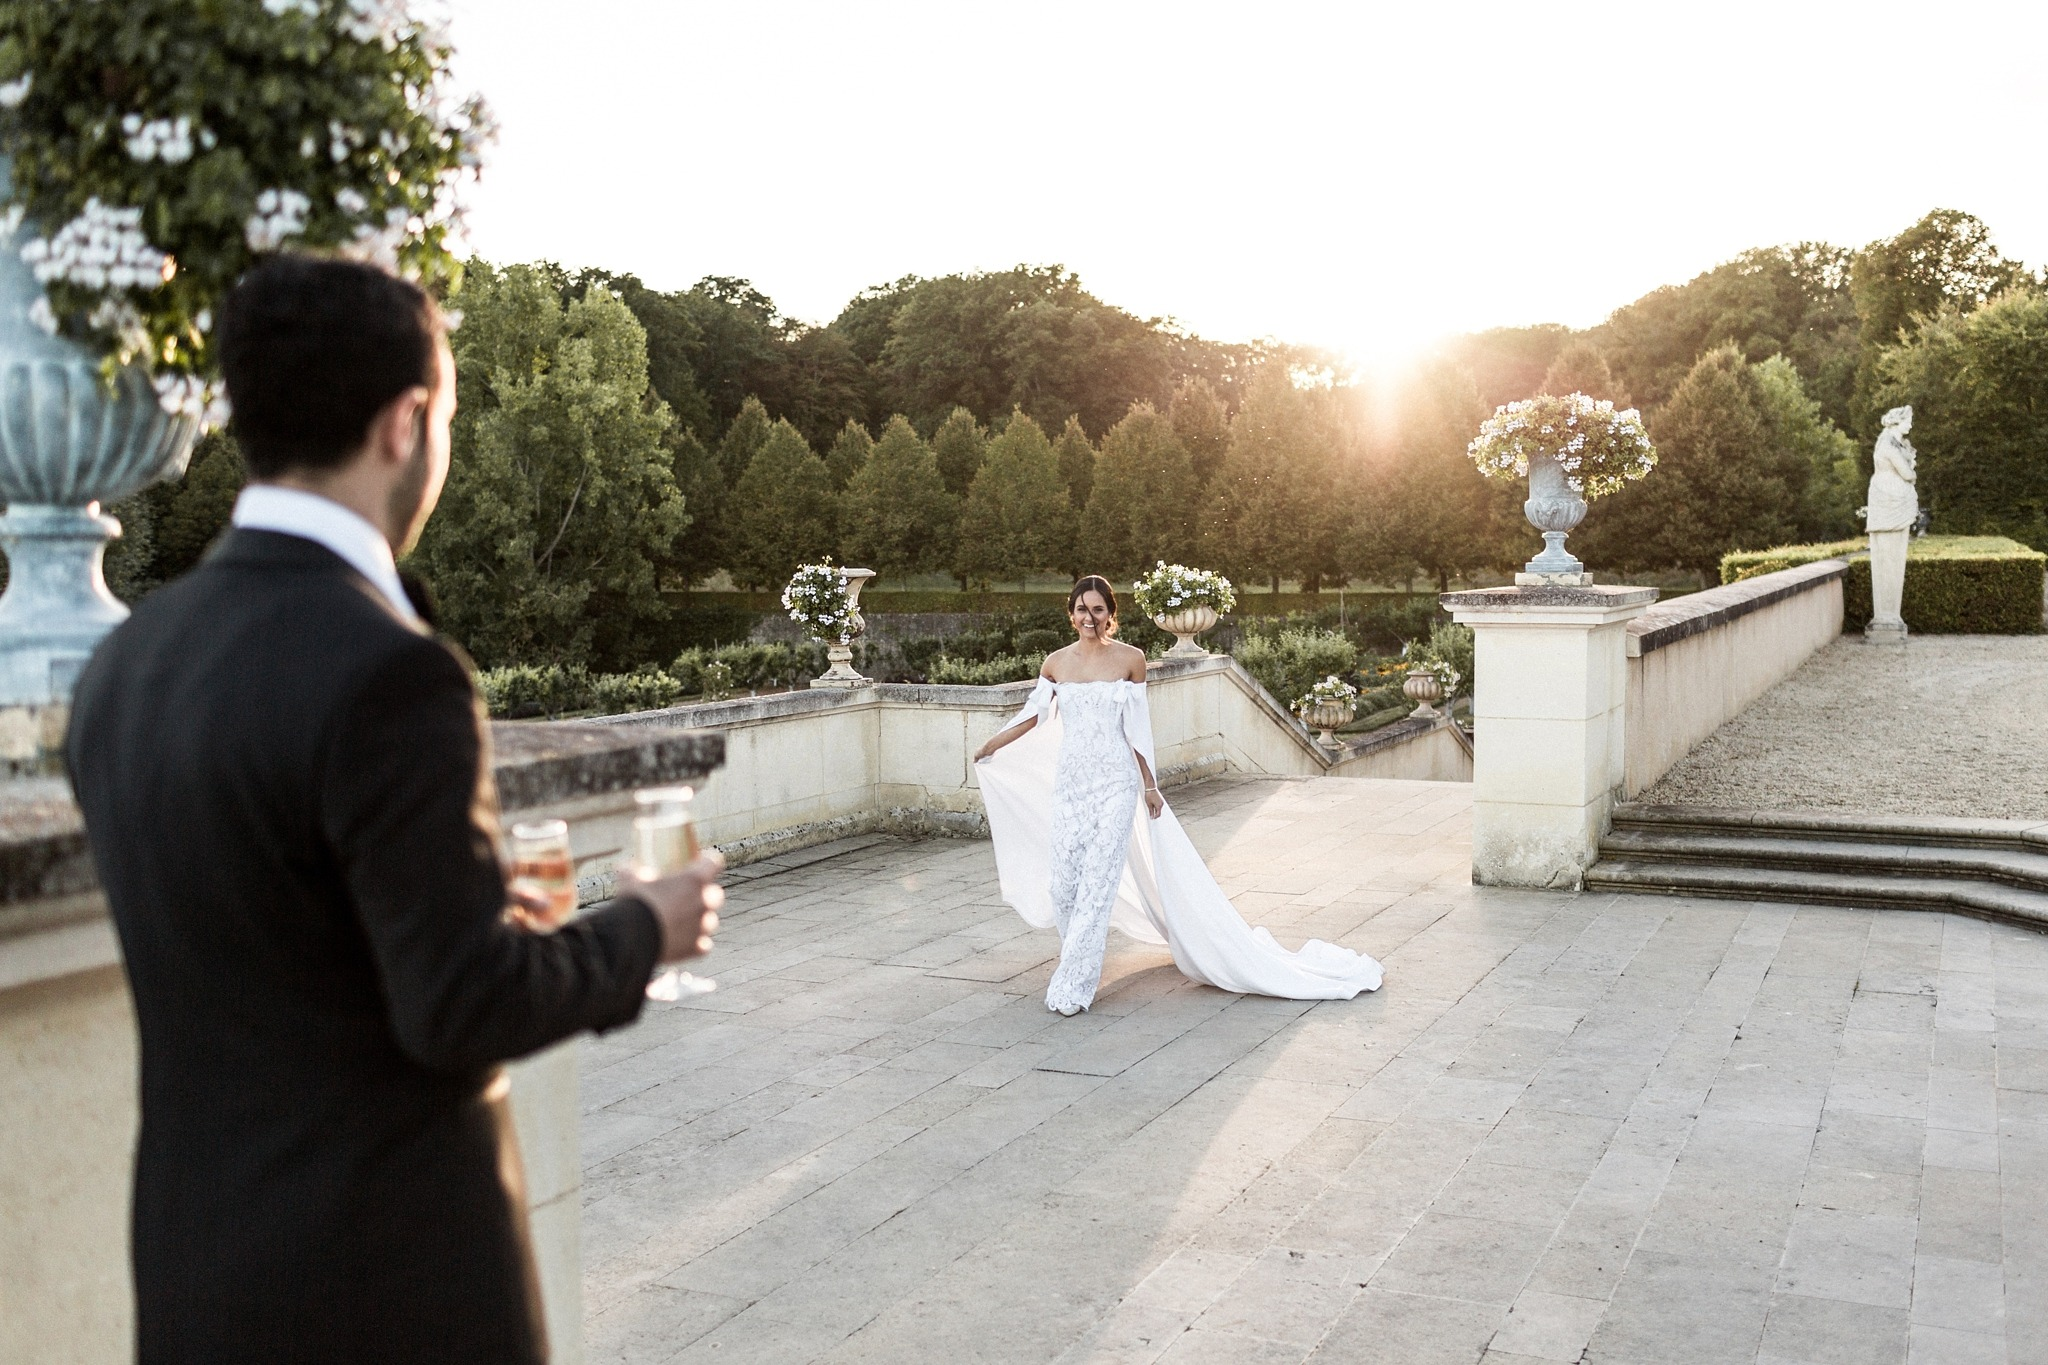 chateau-wedding-france-chanel-eric-as-seen-on-vogue-with-sarah-falugo-photographer_0141